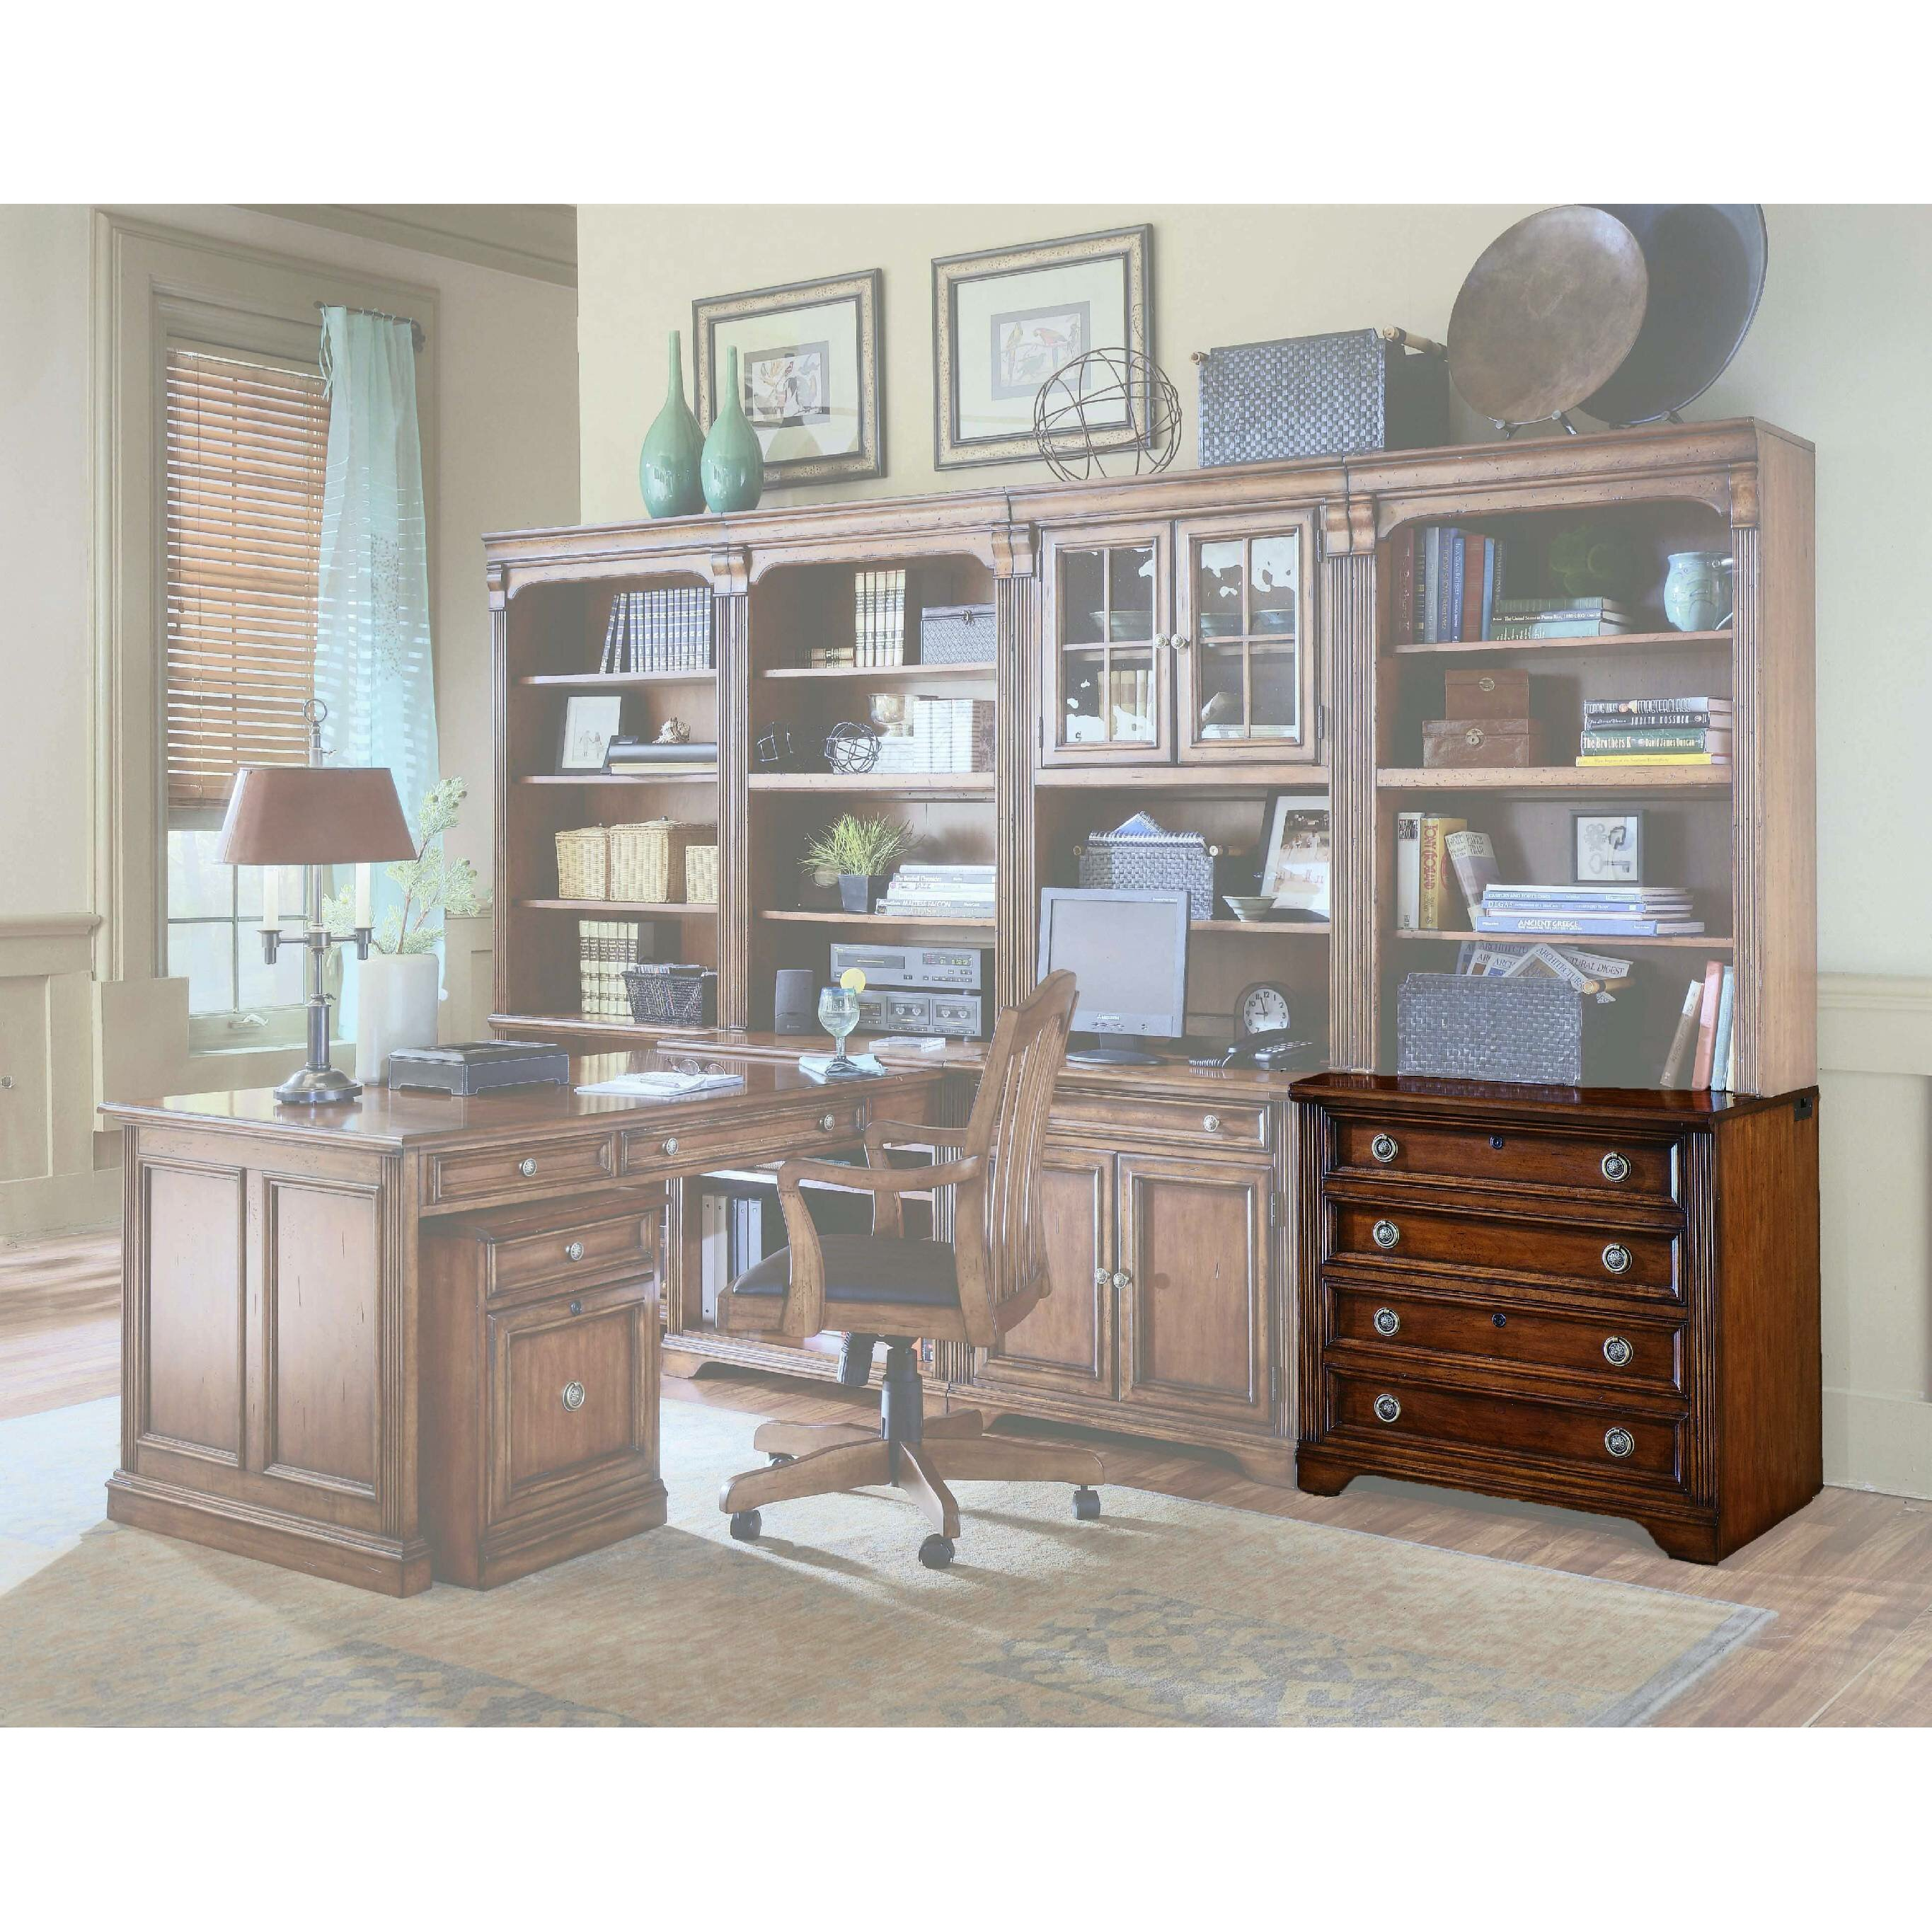 Hooker furniture brookhaven 2 drawer file reviews wayfair for Brookhaven kitchen cabinets price